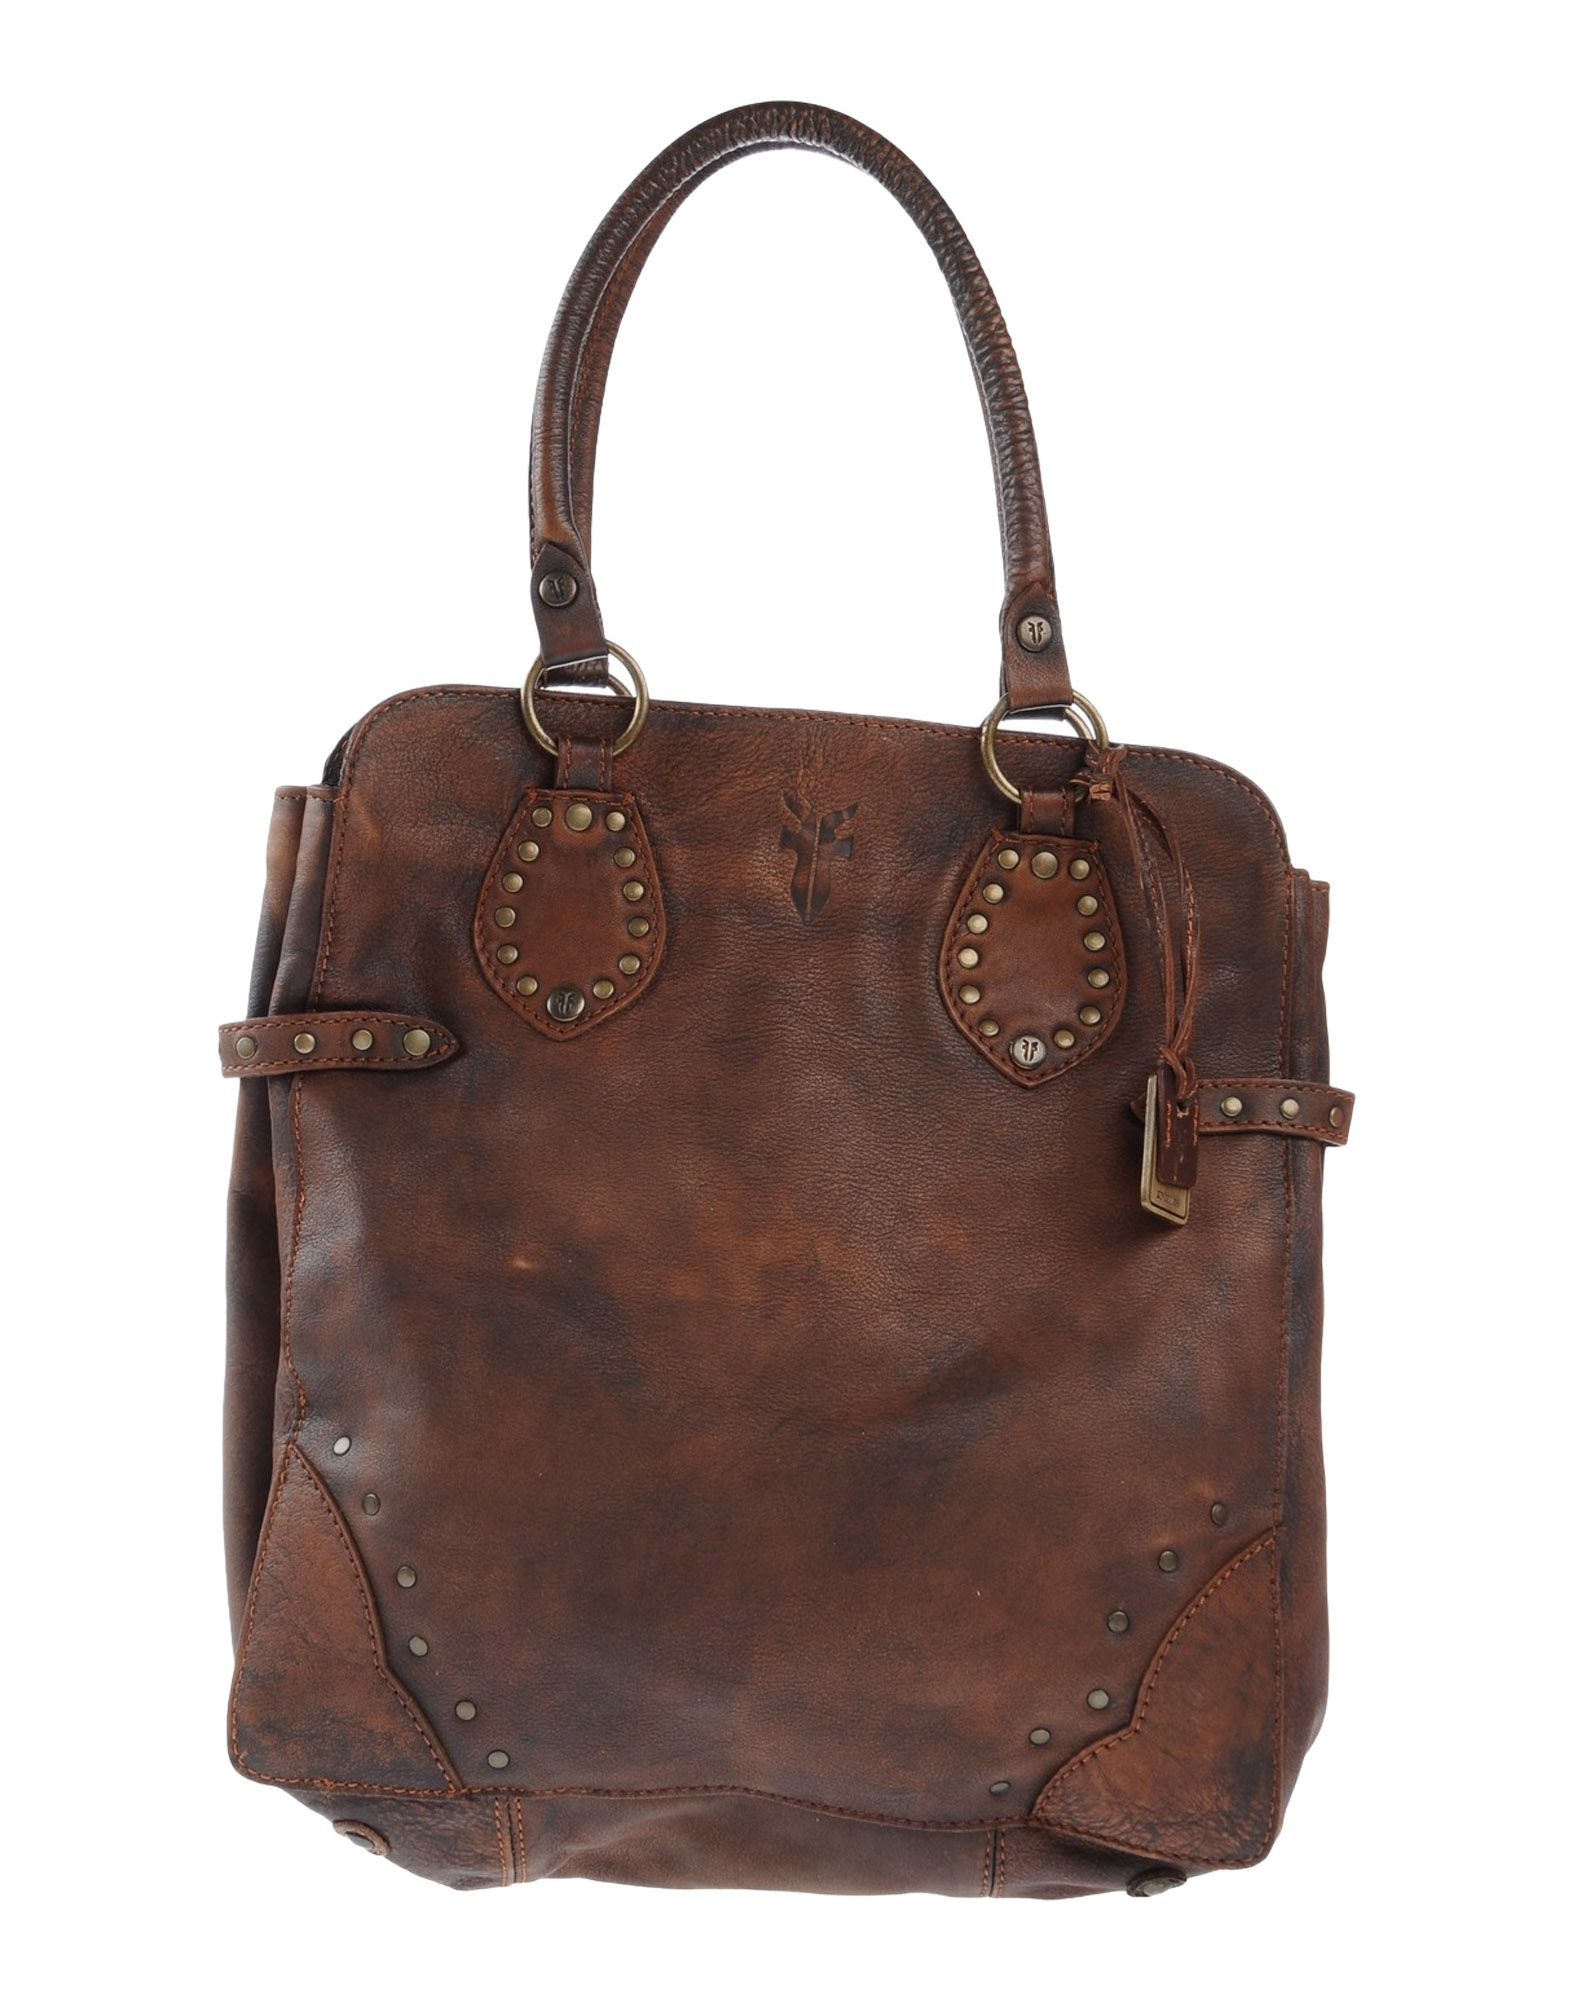 Tory Burch handbags are not available online at cemedomino.ml, but please take a minute to check out our other brands. We think you'll love them too!